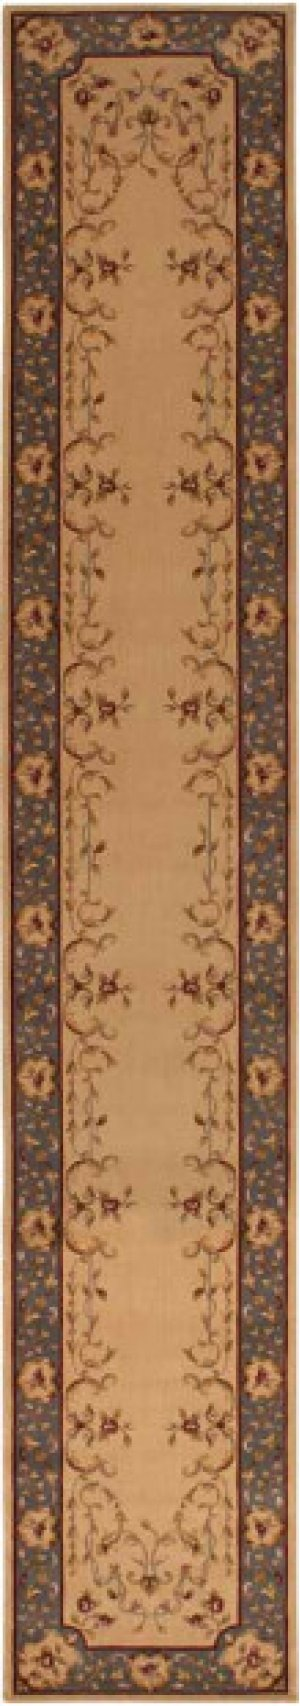 Hard To Find Sizes Ashton House As30 Bge Rectangle Rug 2'1'' X 13'1''